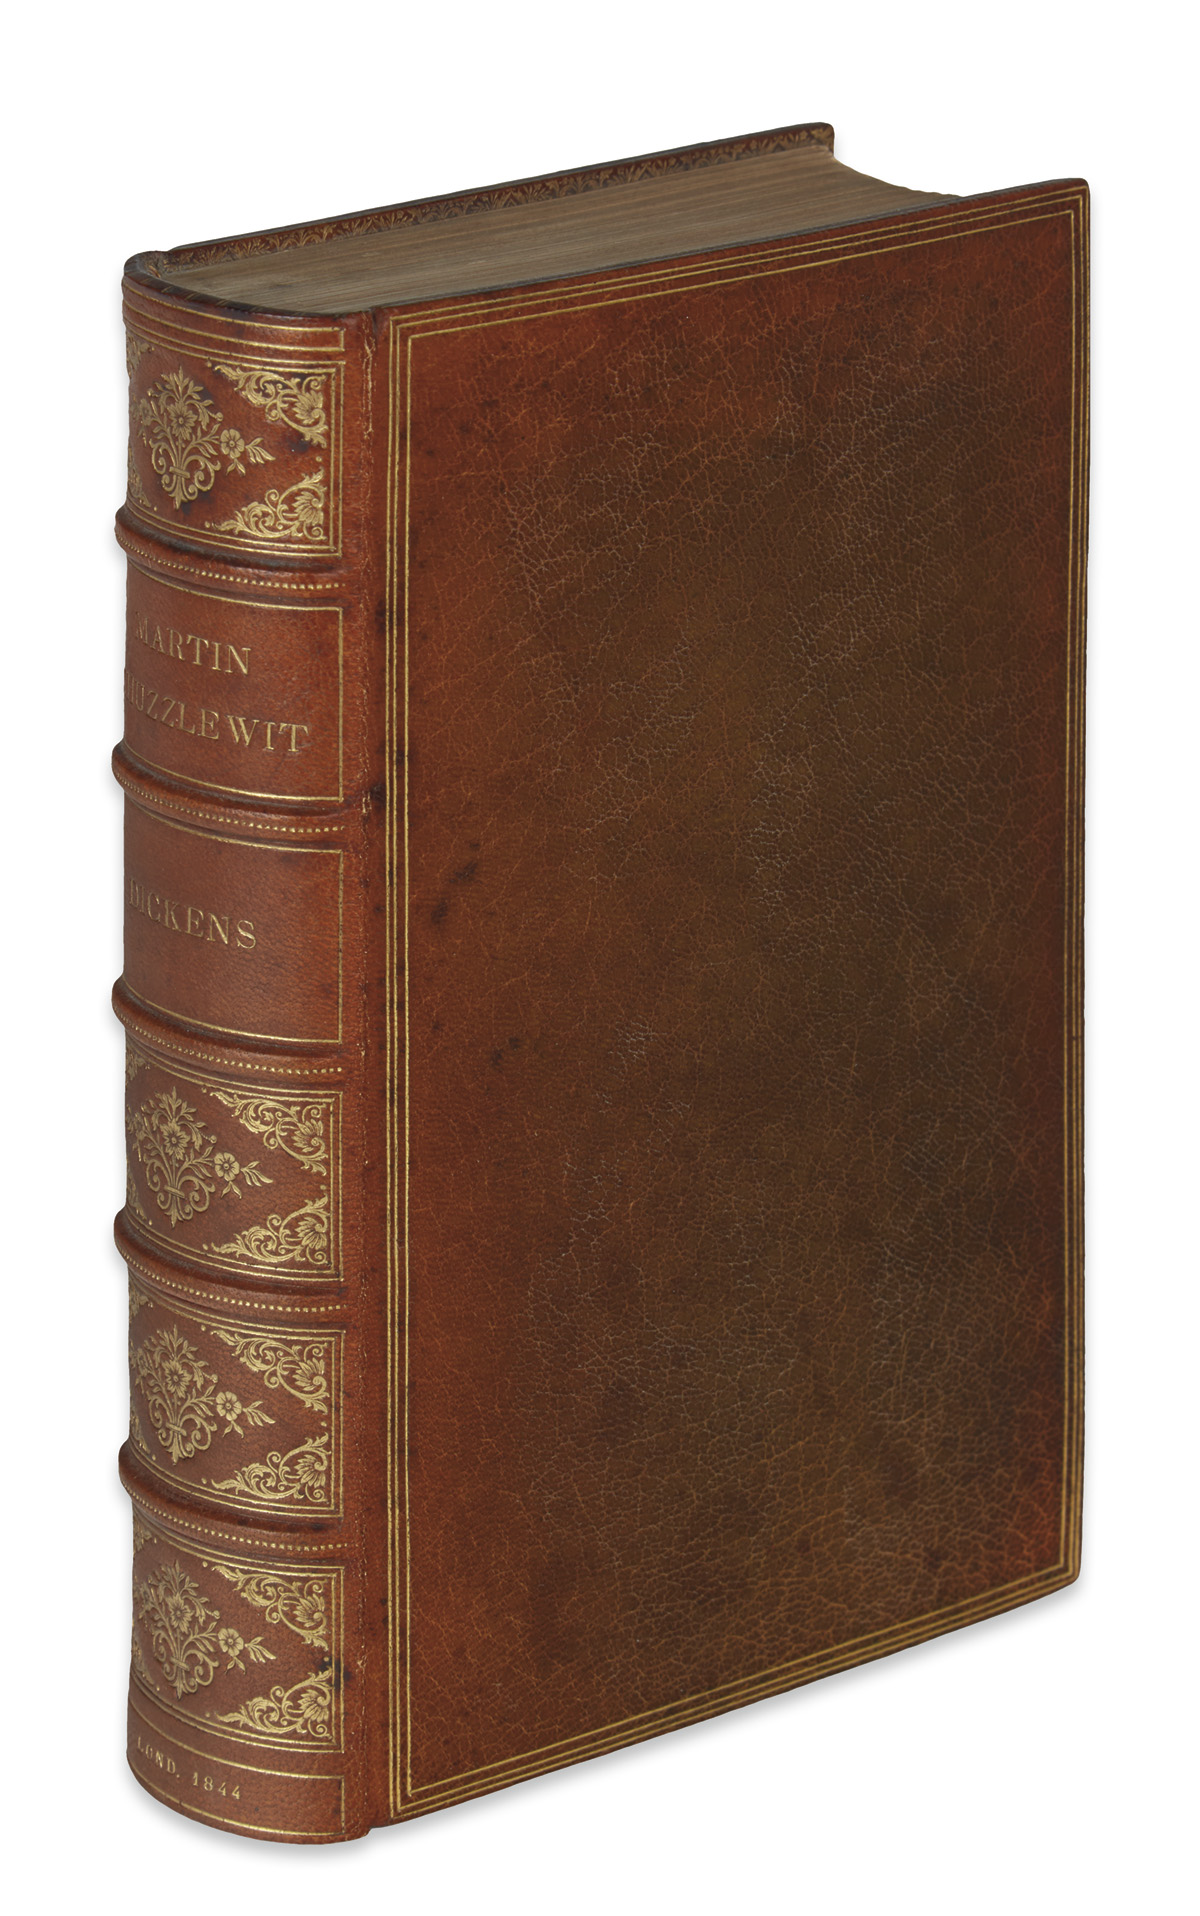 DICKENS-CHARLES-The-Life-and-Adventures-of-Martin-Chuzzlewit